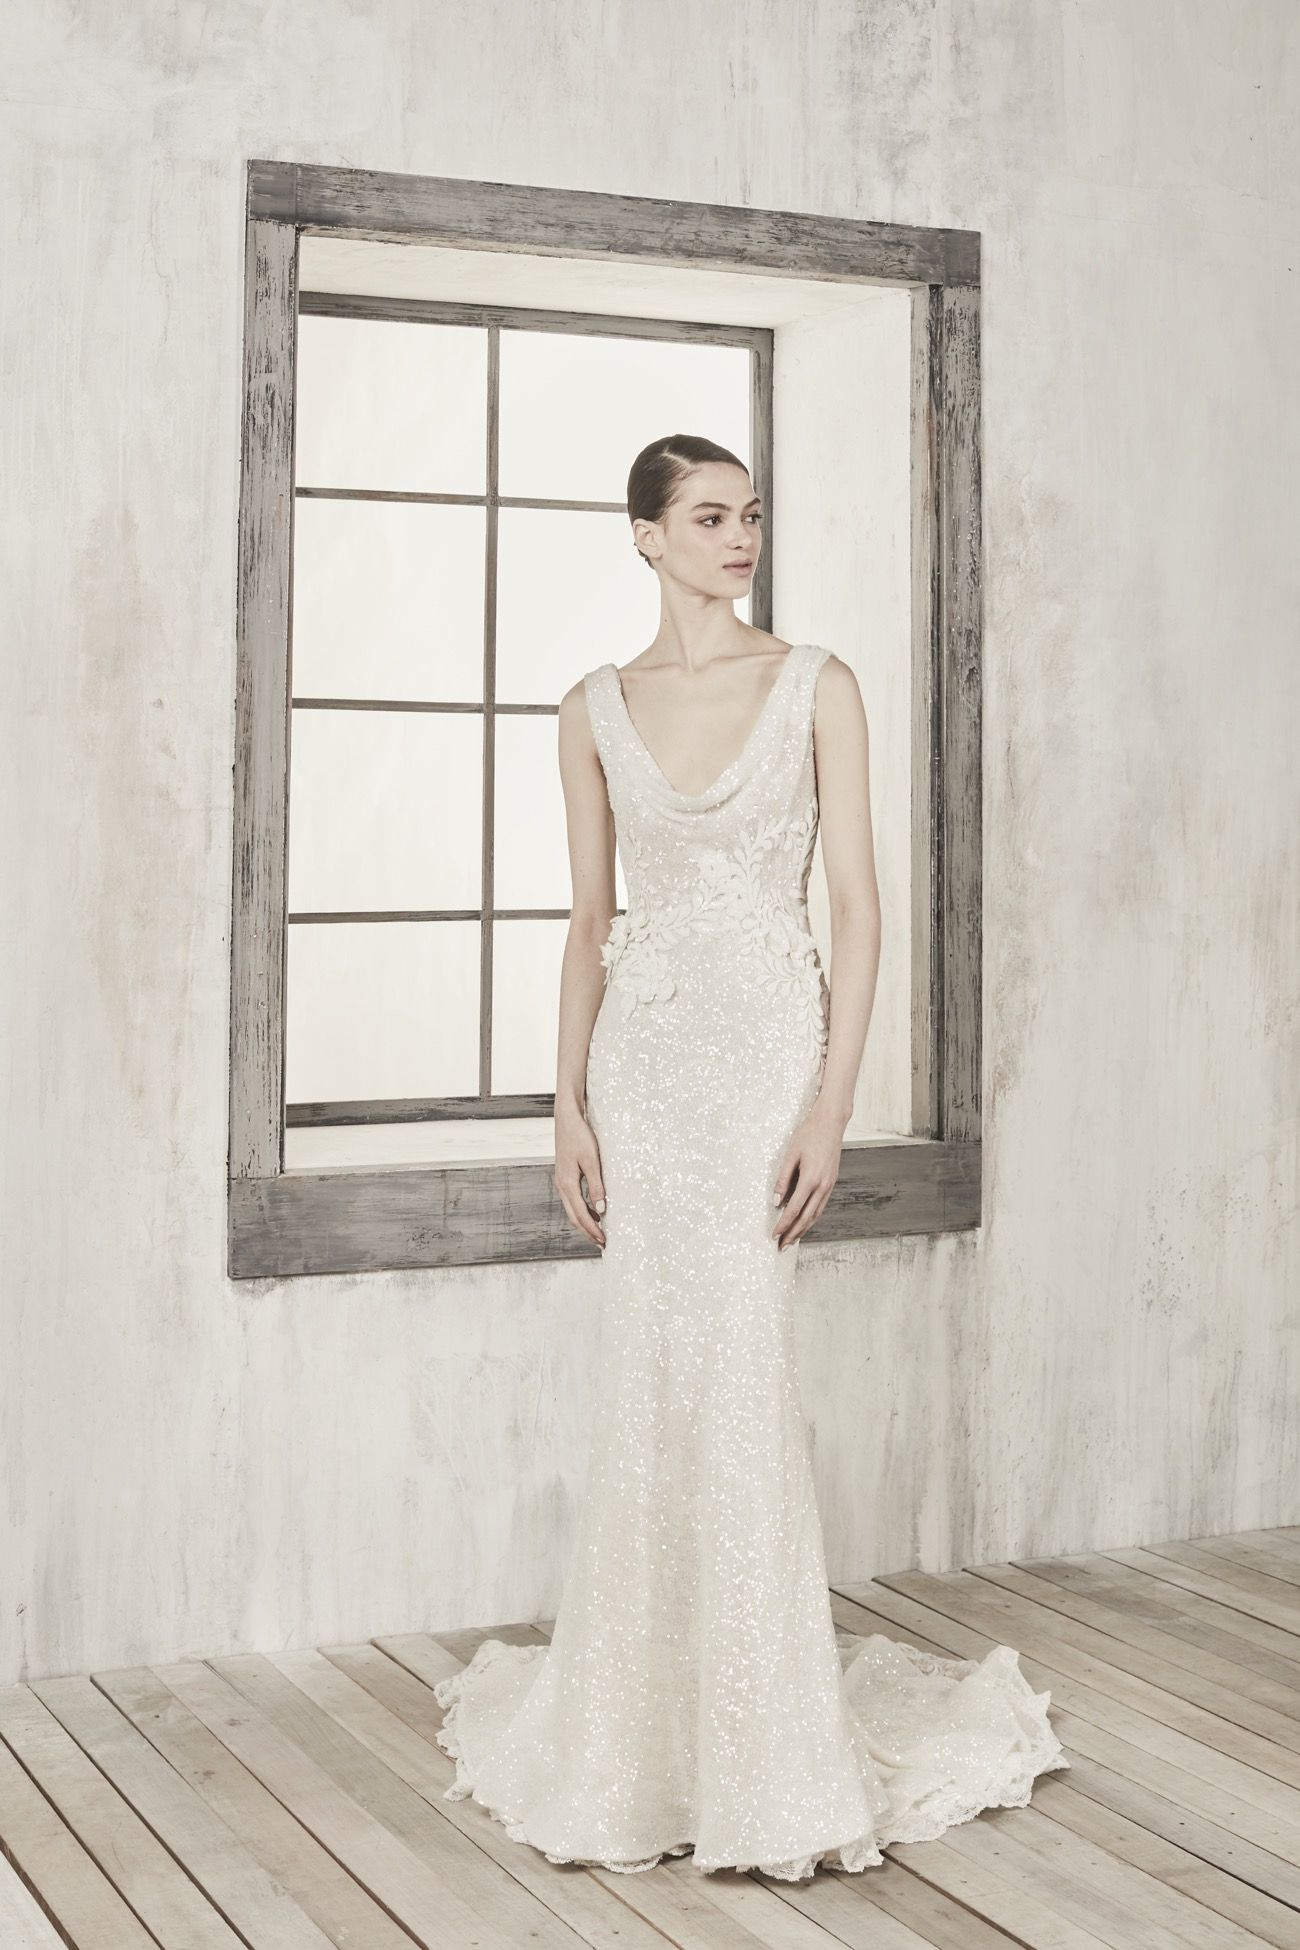 Annasul Y 2019 Bridal Collection Gracia Gown Scoop Neck Mermaid Wedding Dress Made Entirely From Sequin Fabric With Draped Neckline And Beaded Flowers: Y Vintage Mermaid Wedding Dress At Websimilar.org